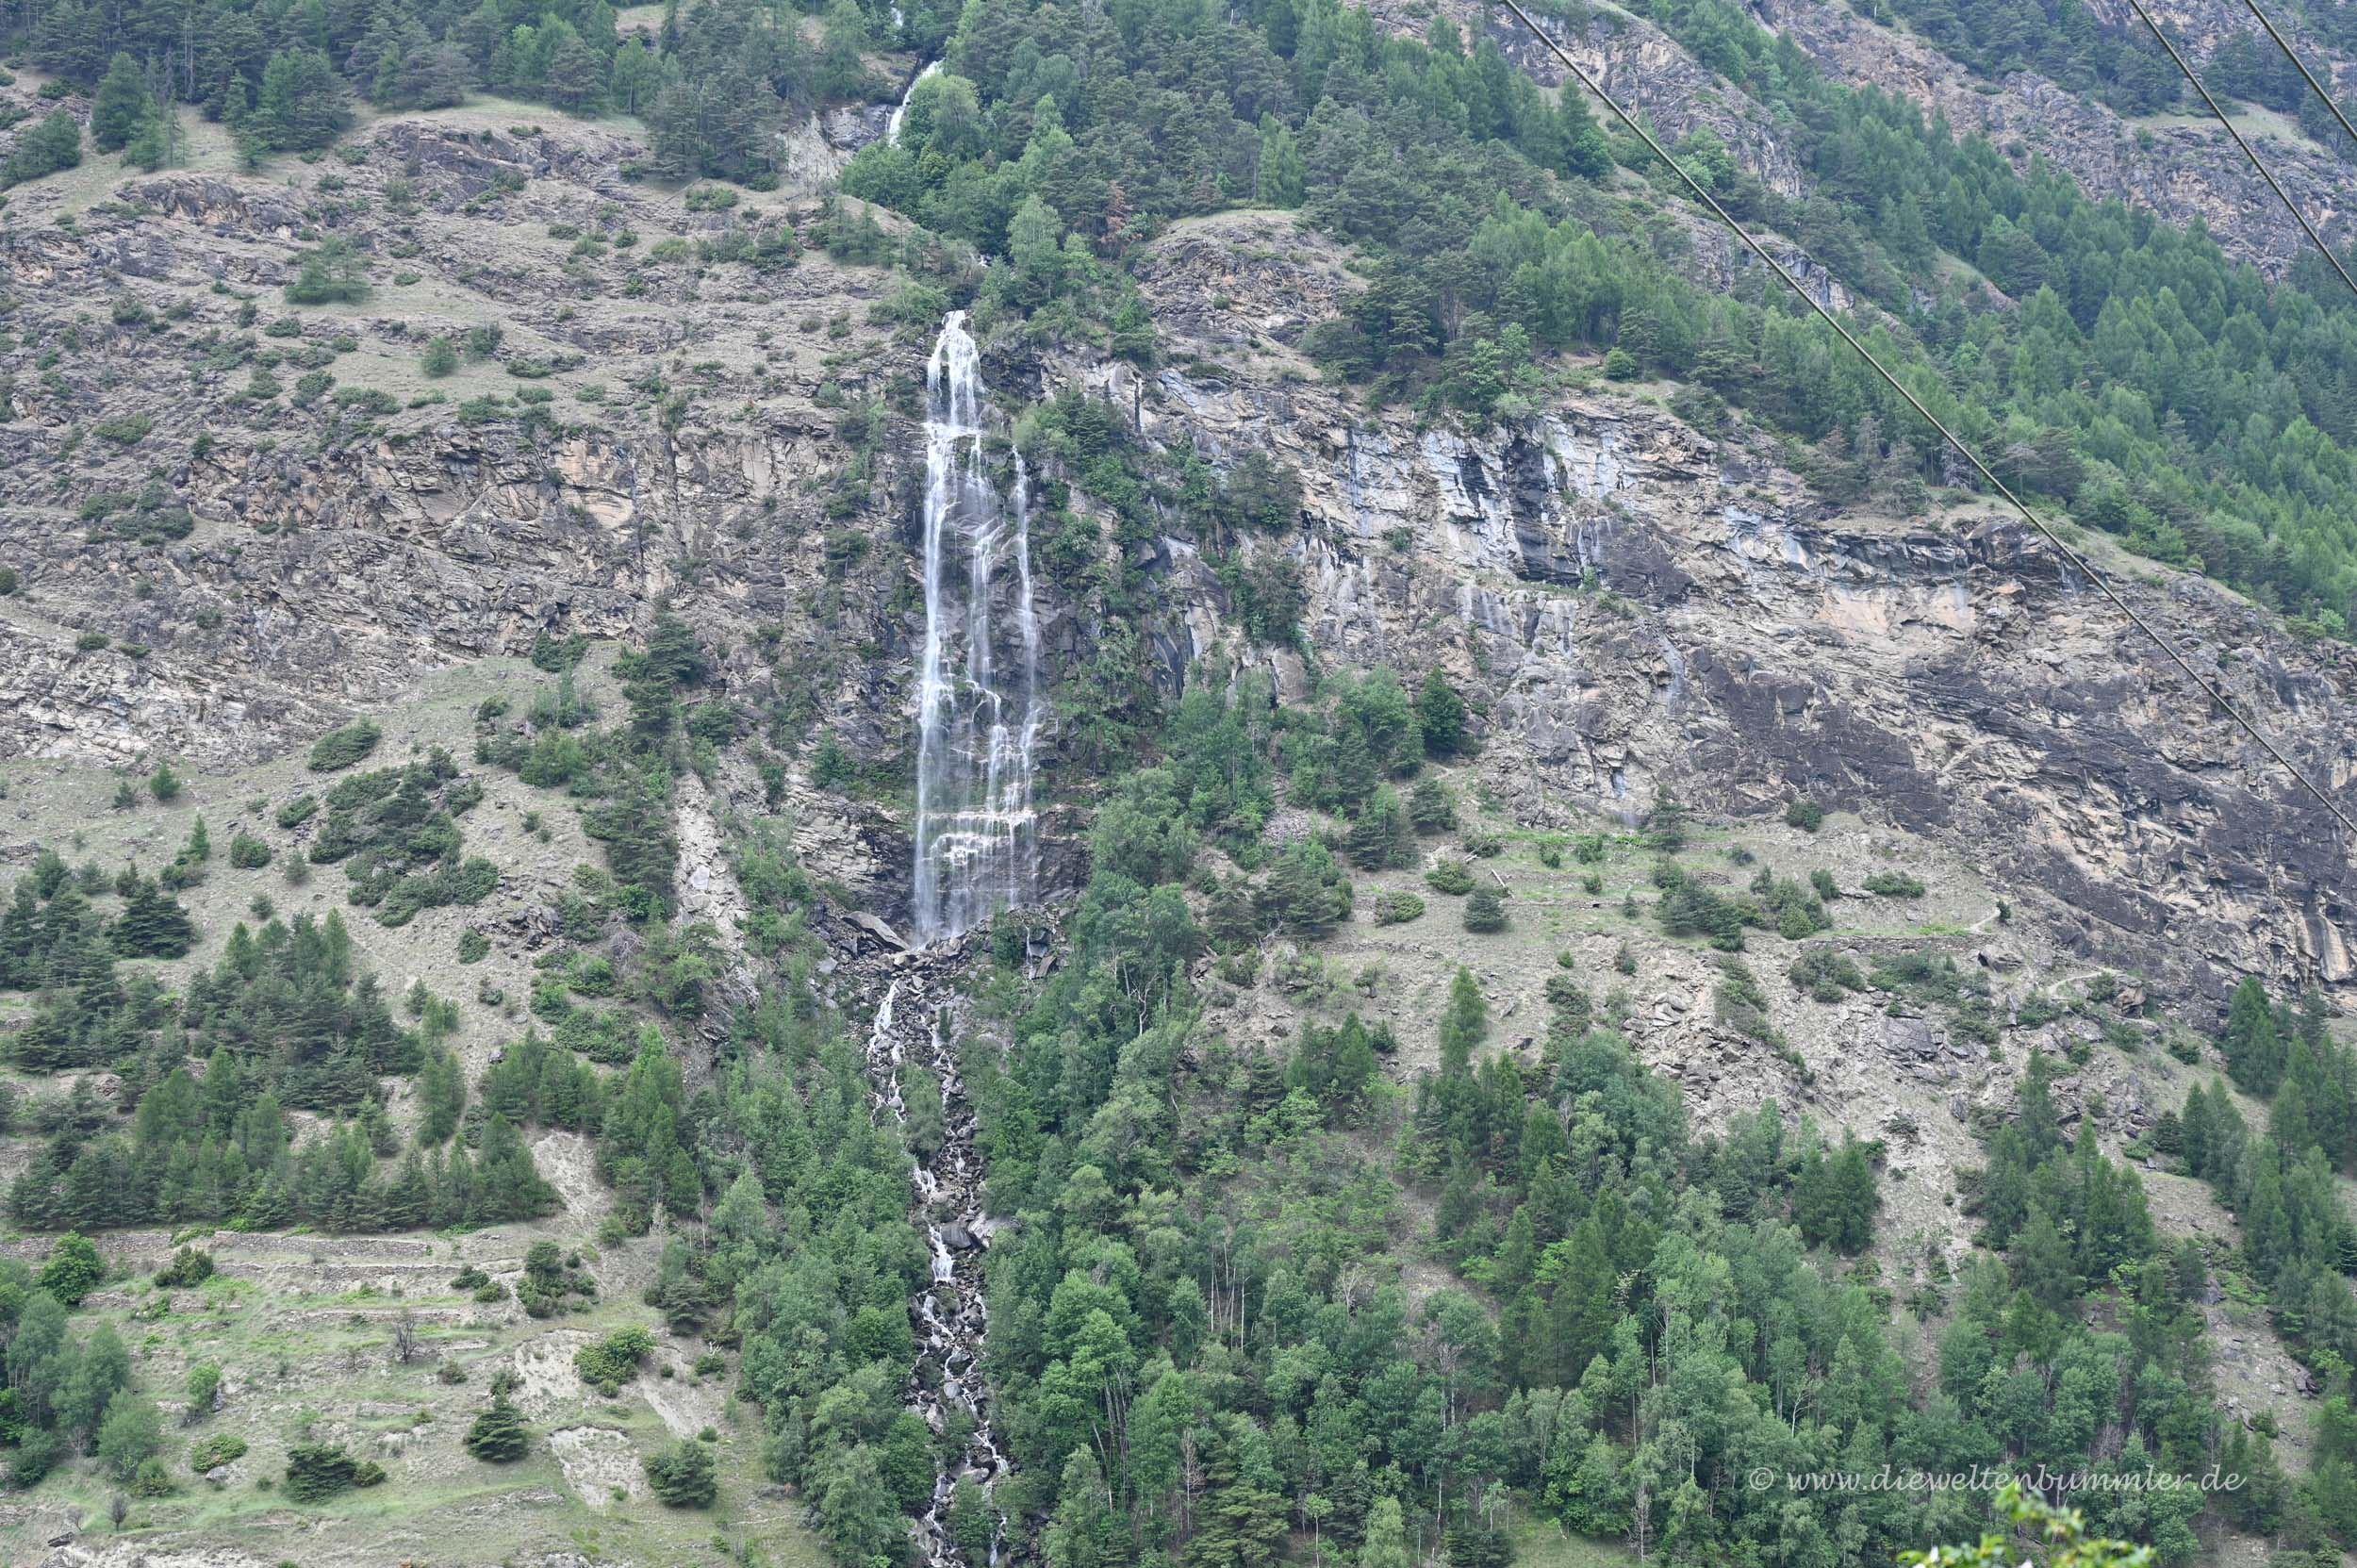 Wasserfall am Nationalpark